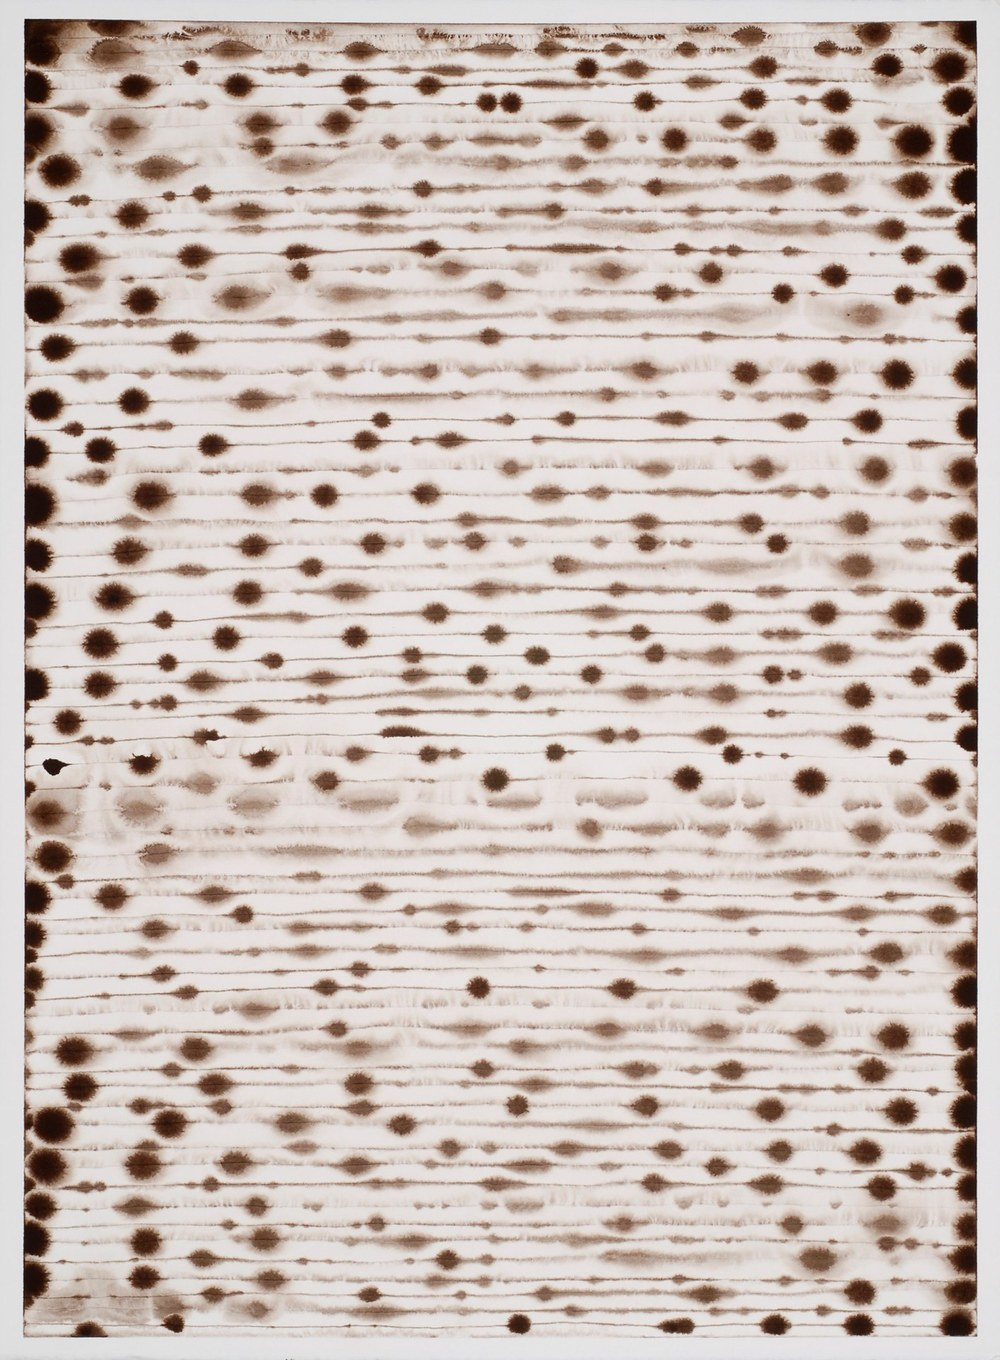 Lisa Espenmiller, 07.27.11 (the groundless ground), 2011, ink on paper, 30 x 22 inches